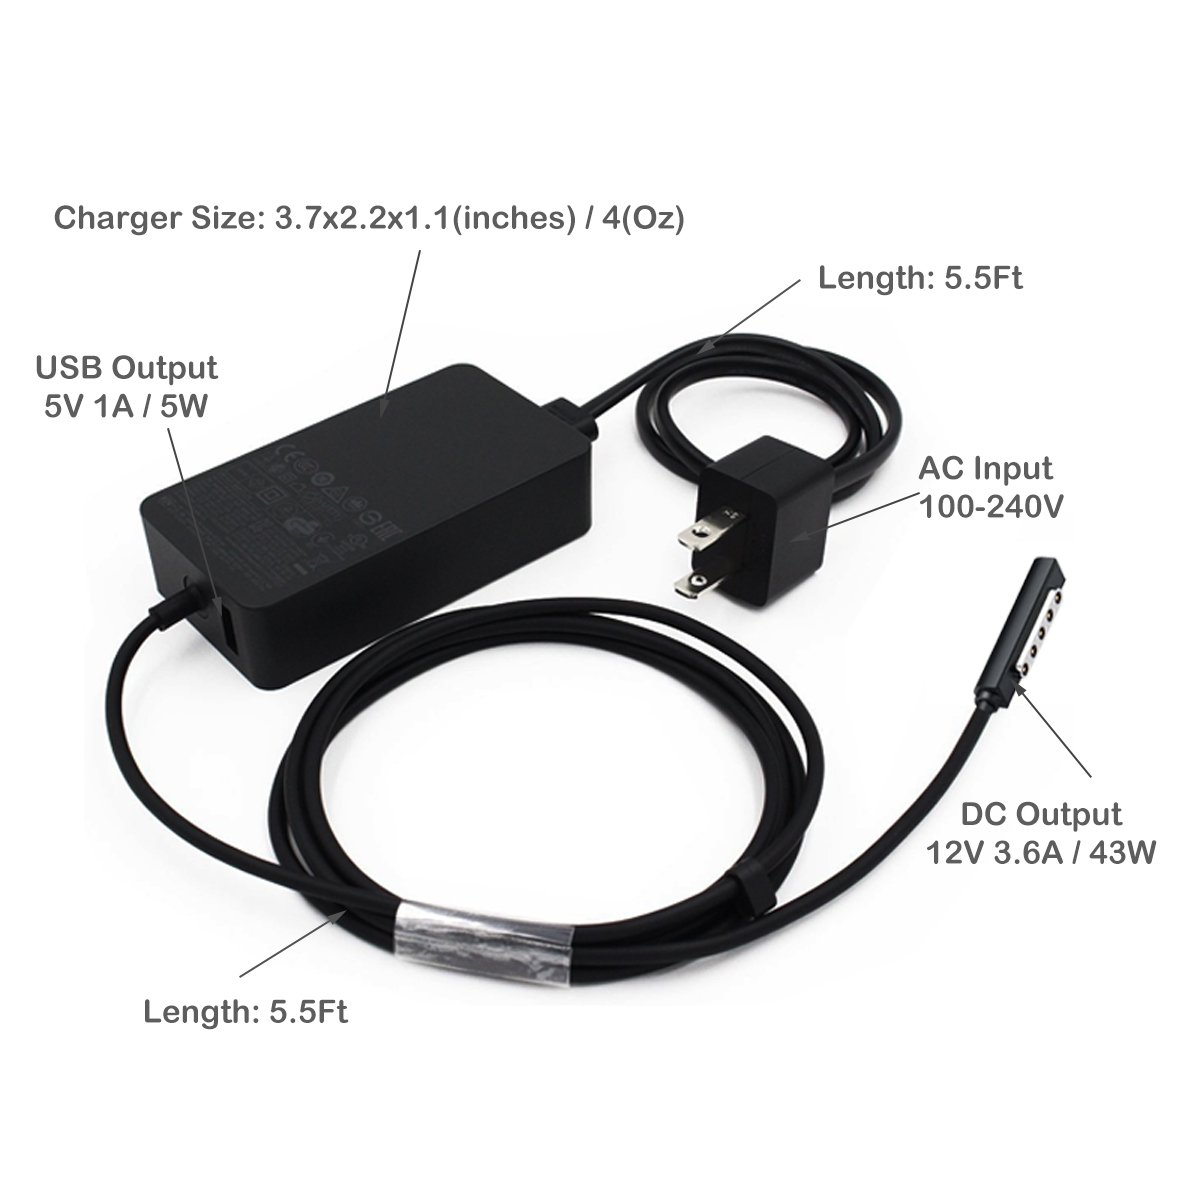 PoderCamino 48W Charger Power Supply for 12V 3.6A Surface RT Surface Pro 1/2 and Surface 2 Tablet, Replace for Microsoft Surface 1512 1516 1536 Charger Adapter Cord with 5V 1A USB Charging Port by PoderCamino (Image #8)